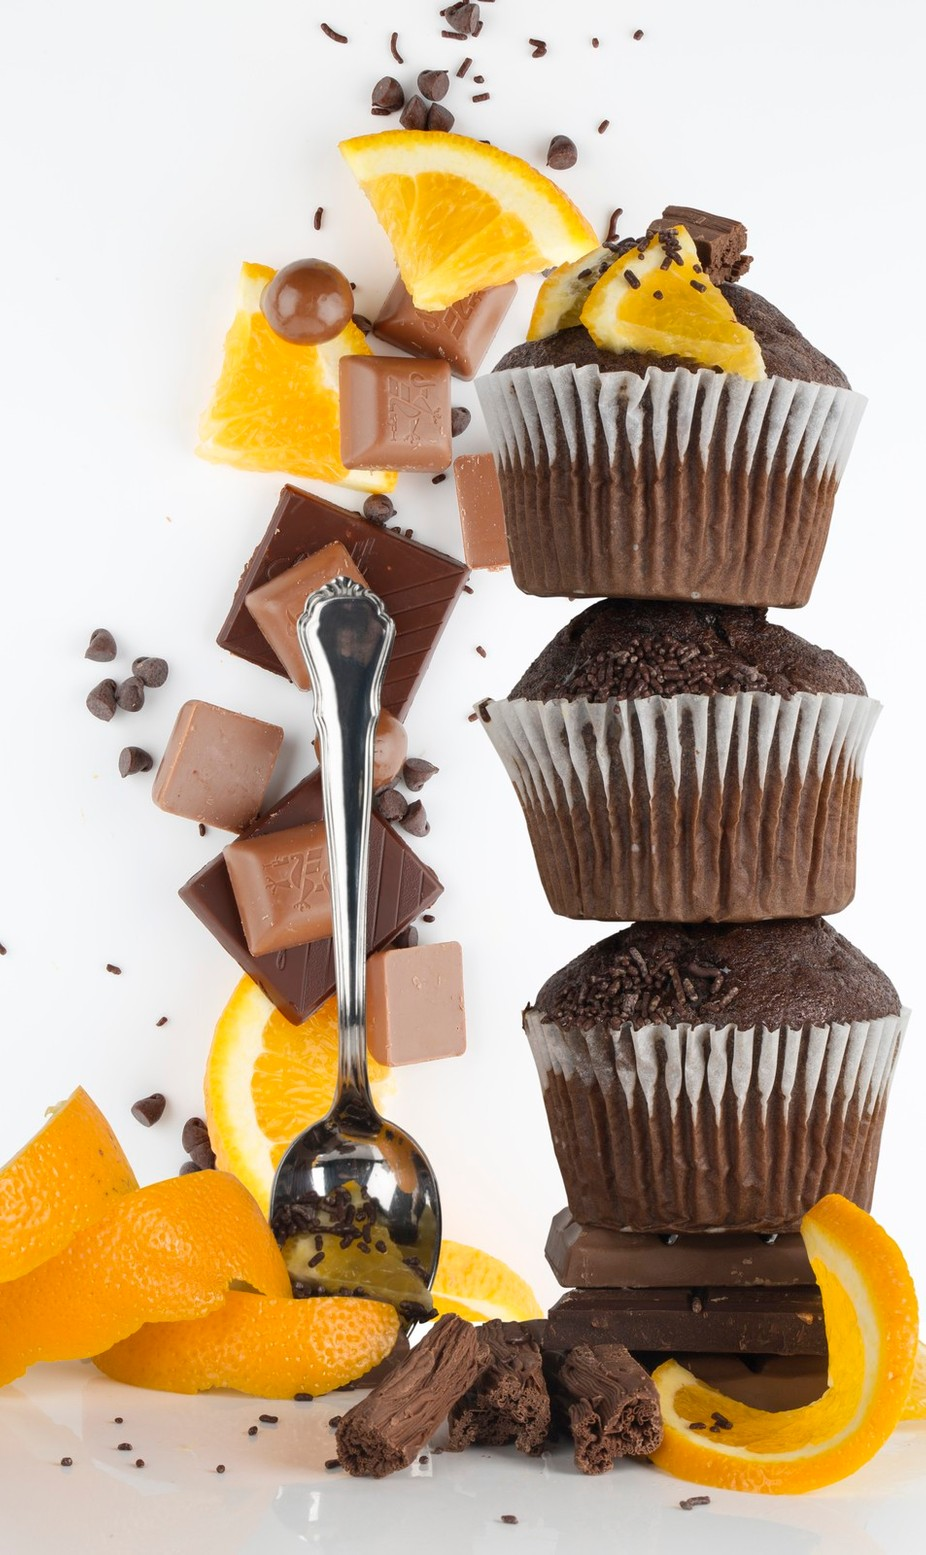 chocolate and orange by hanlismit - Looks Delicious Photo Contest